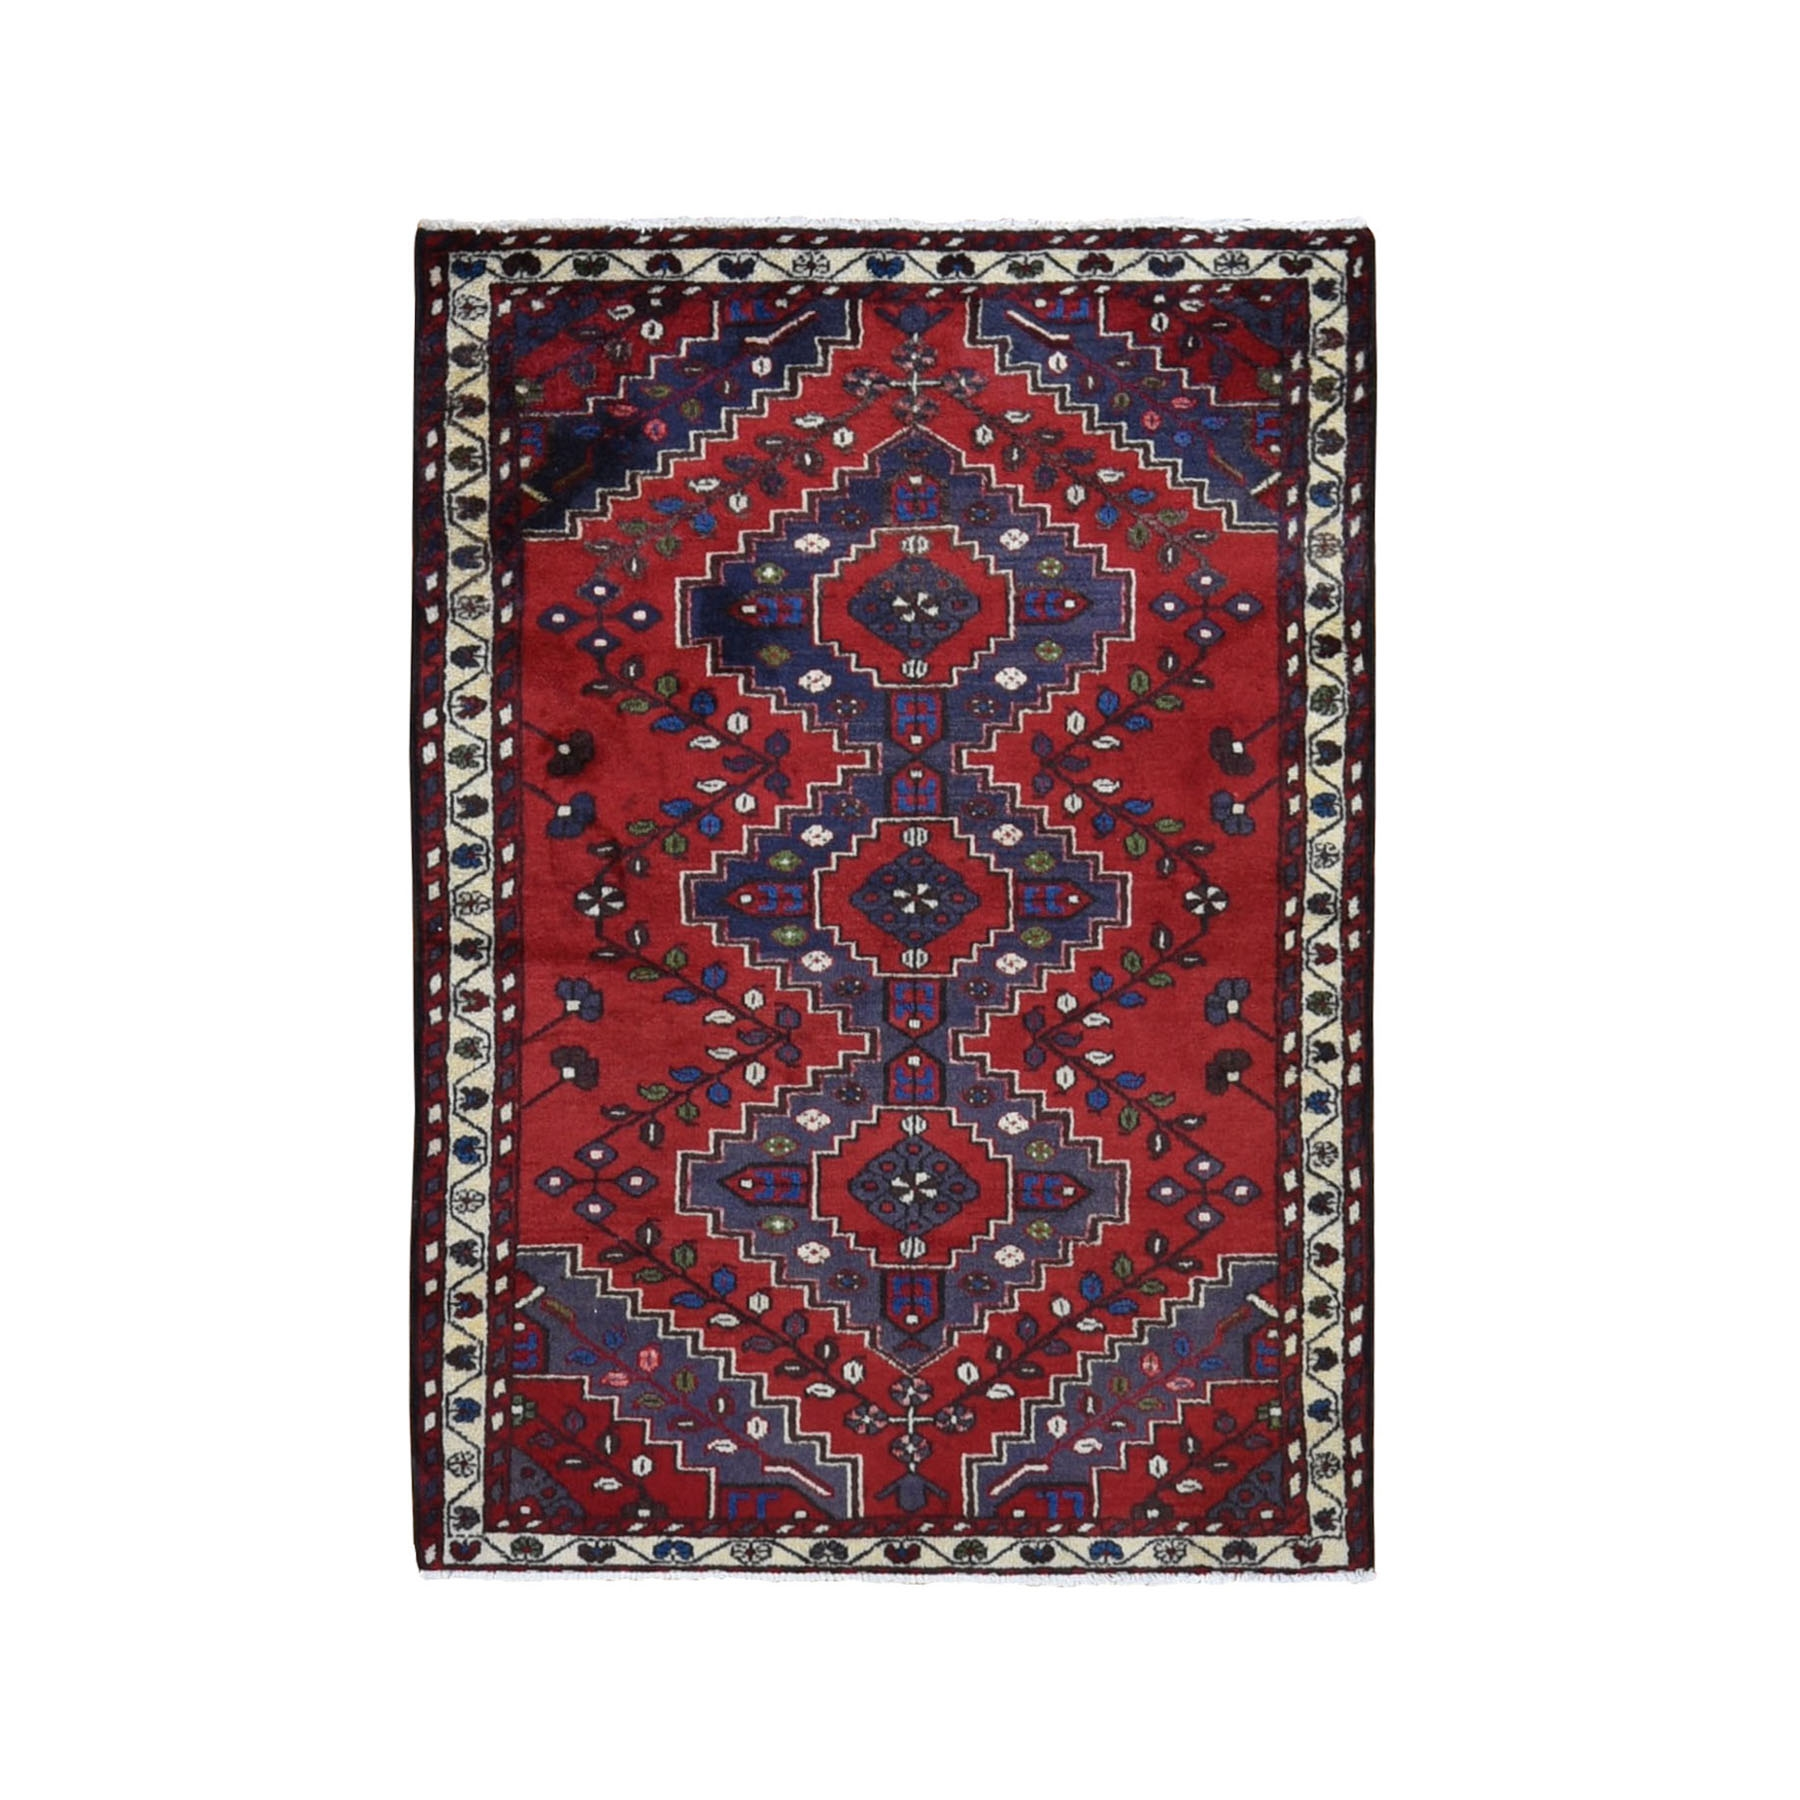 "3'5""X5' Red New Persian Pure Wool Tribal Design Hand Knotted Bohemian Rug moad98d8"